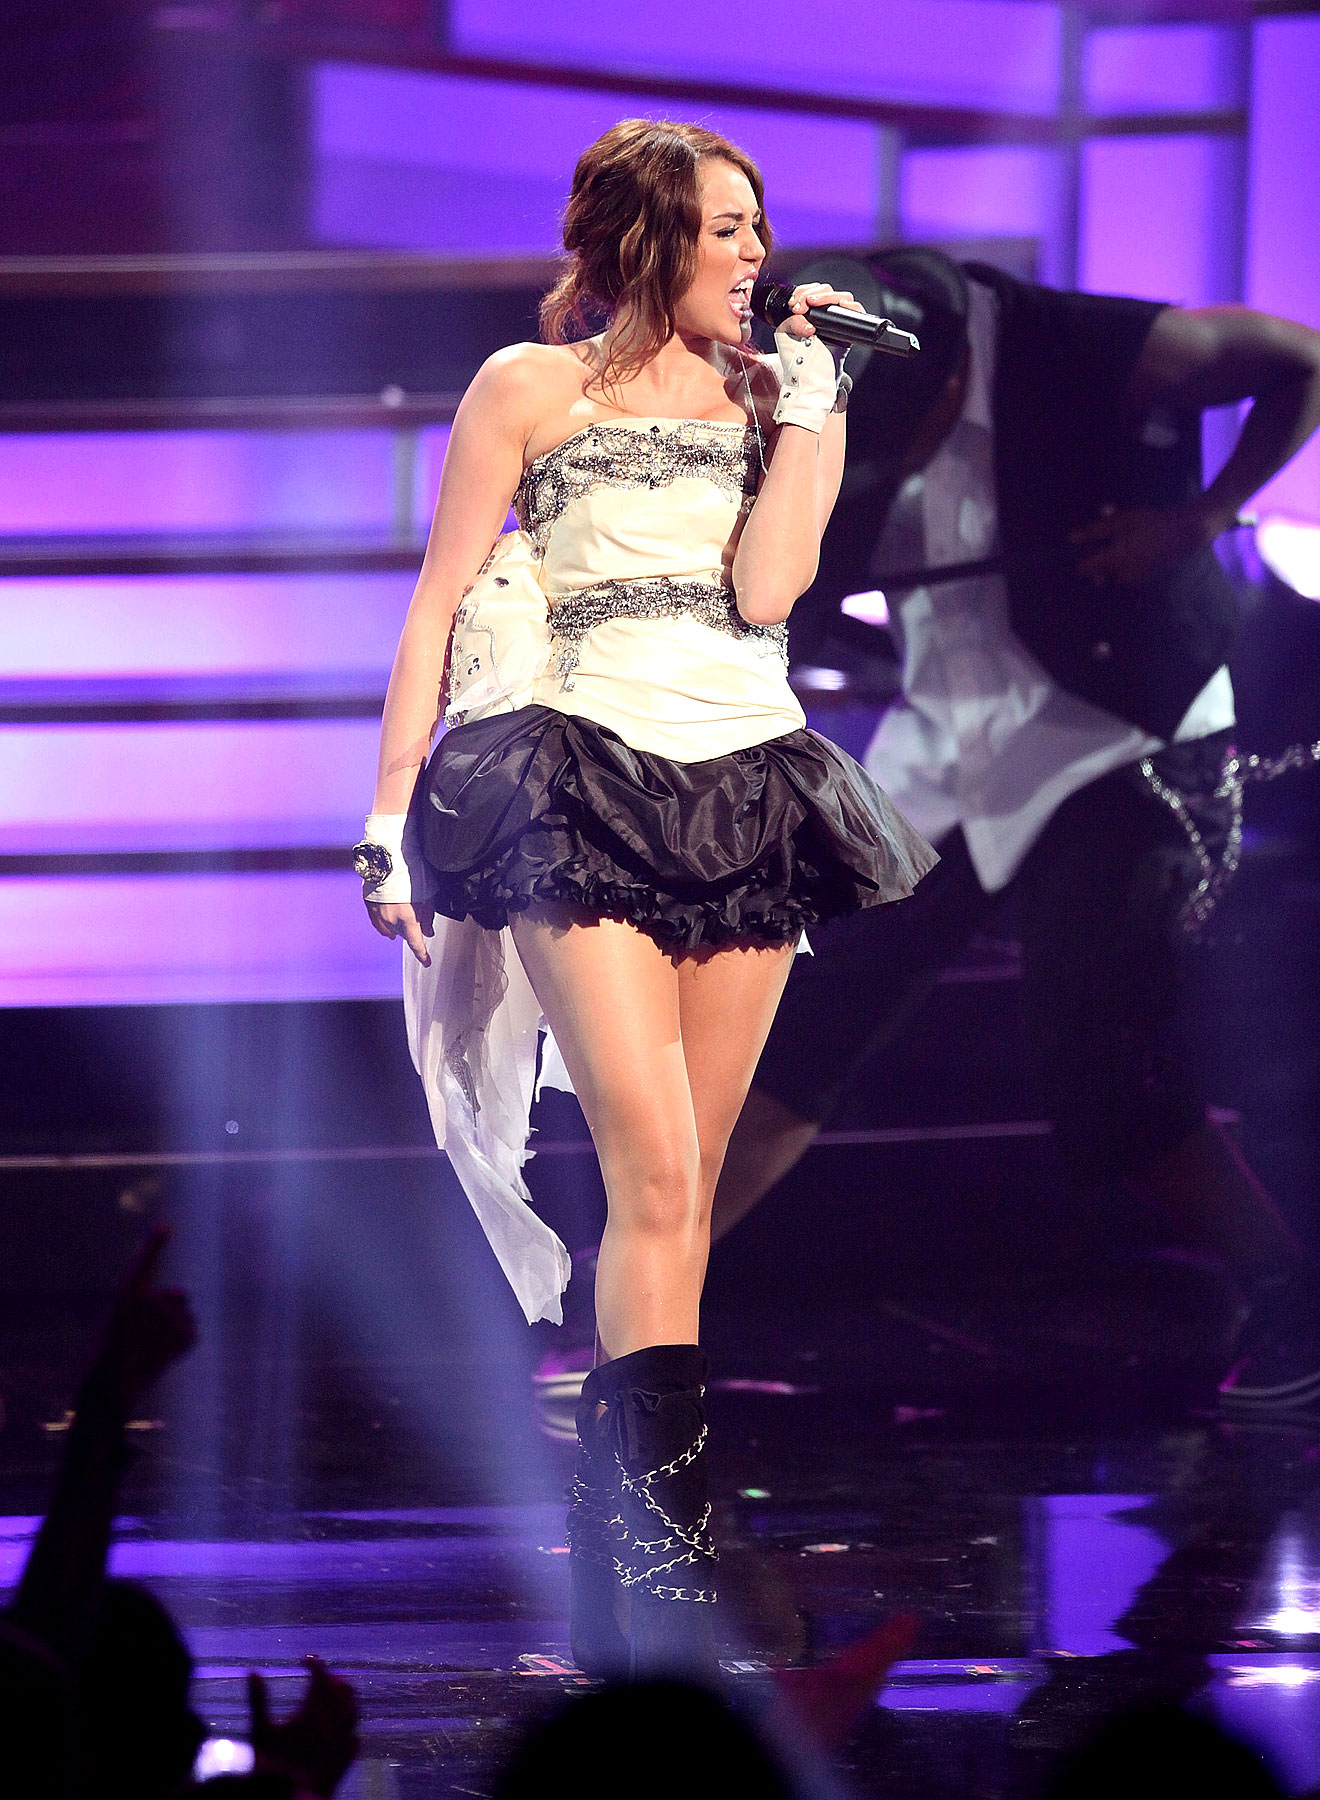 PHOTO GALLERY: VH1 Divas Show